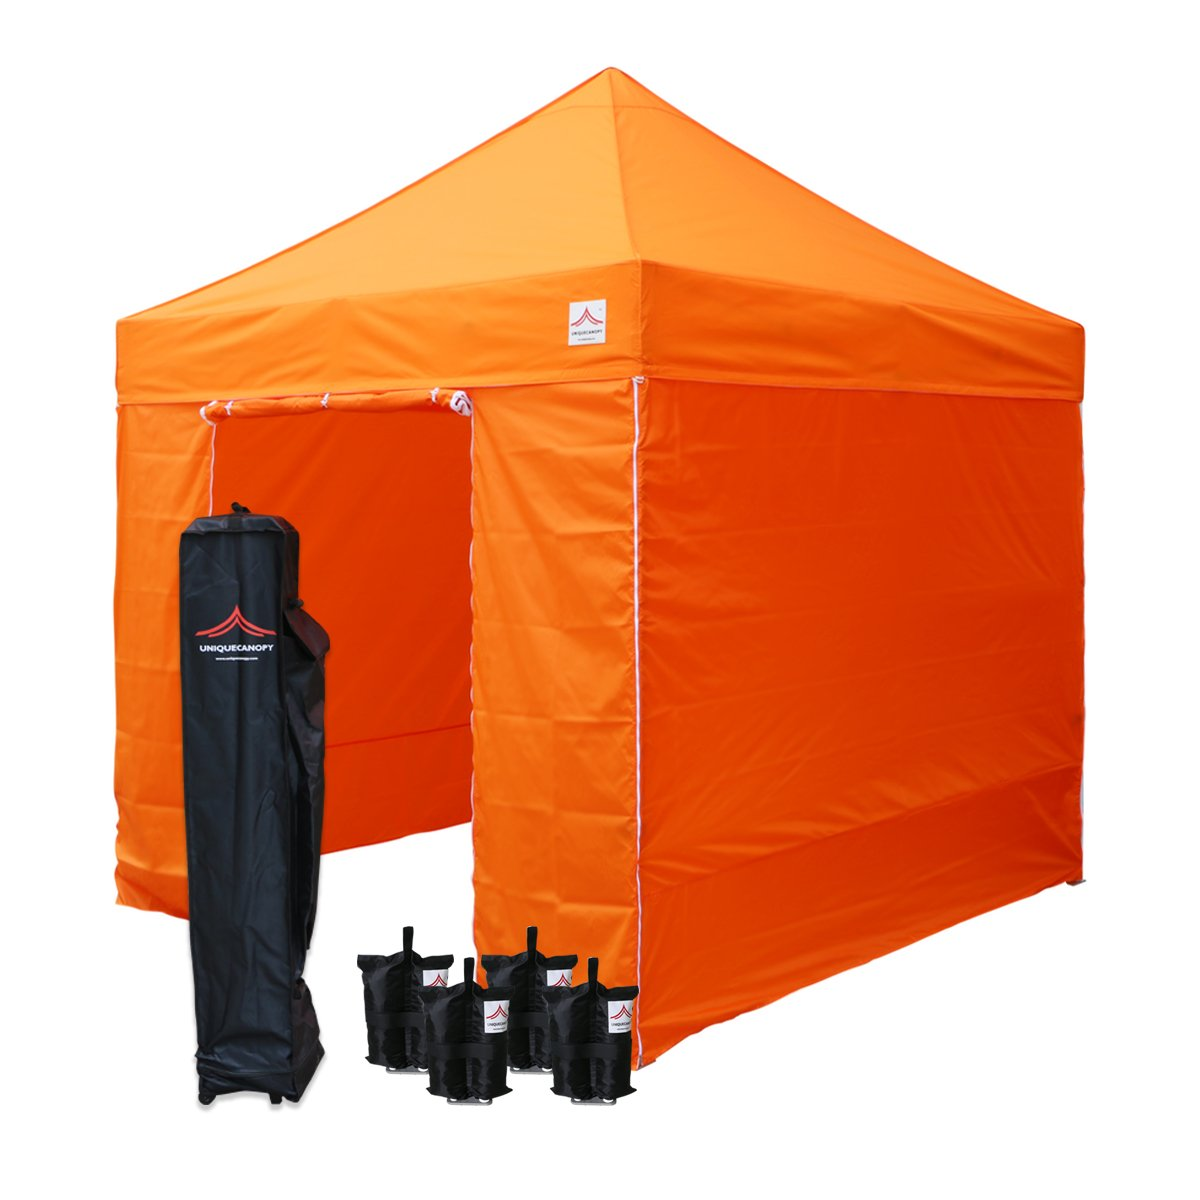 UNIQUECANOPY 8 x8 Ez Pop Up Canopy Tent Commercial Instant Shelter, with 4 Removable Zippered Side Walls and Heavy Duty Roller Bag, 4 Sand Bags Orange